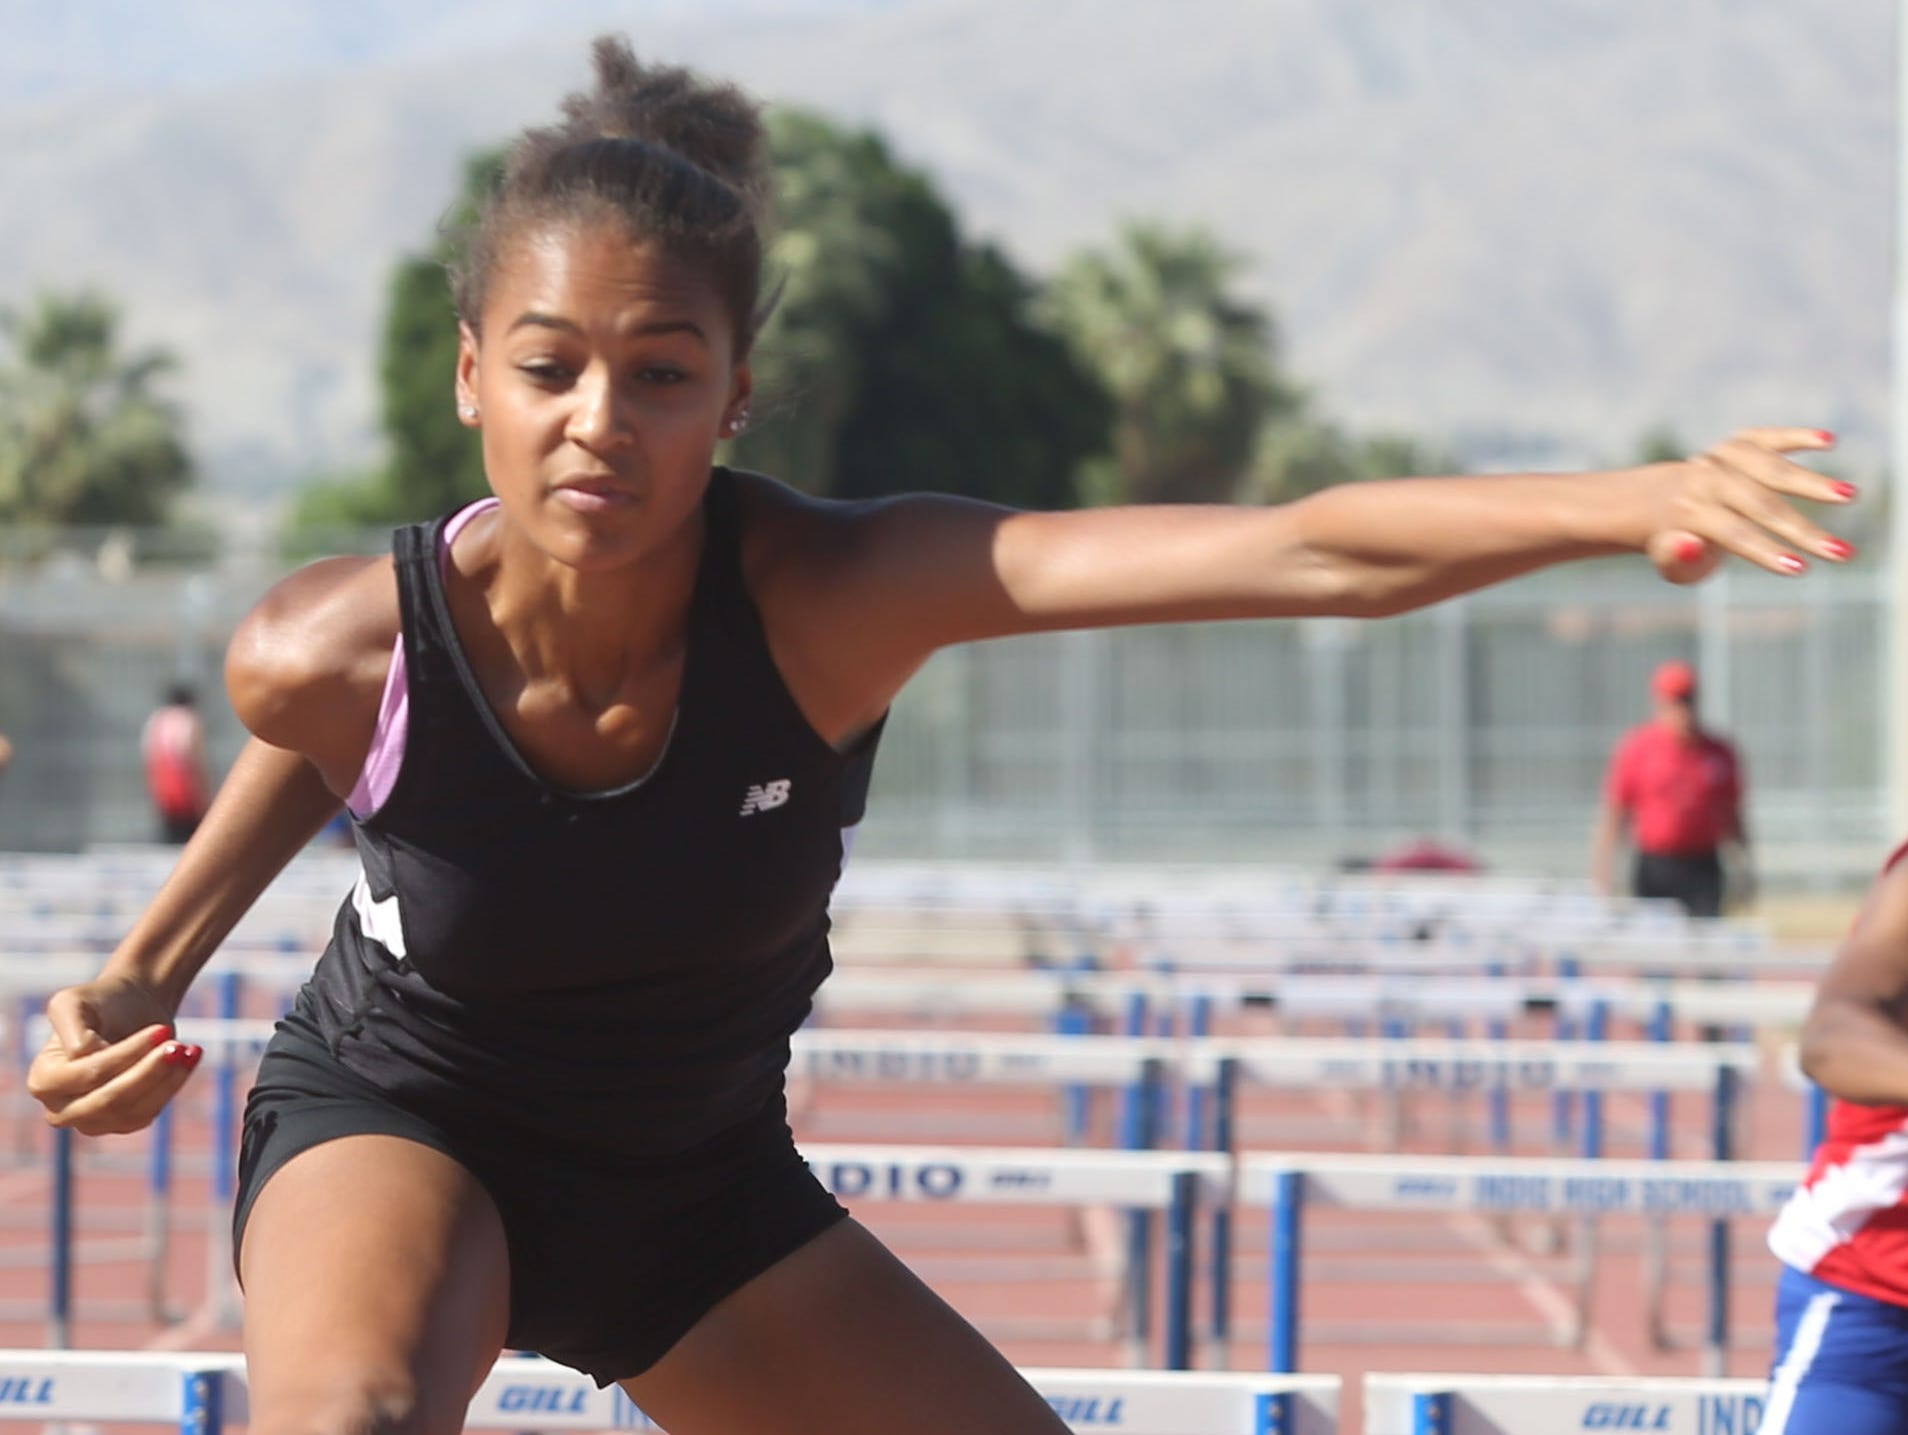 Palm Springs High School freshman Jada McLean wins the 100 meter hurdle race against Indio High School during a track meet between the two schools Thursday.